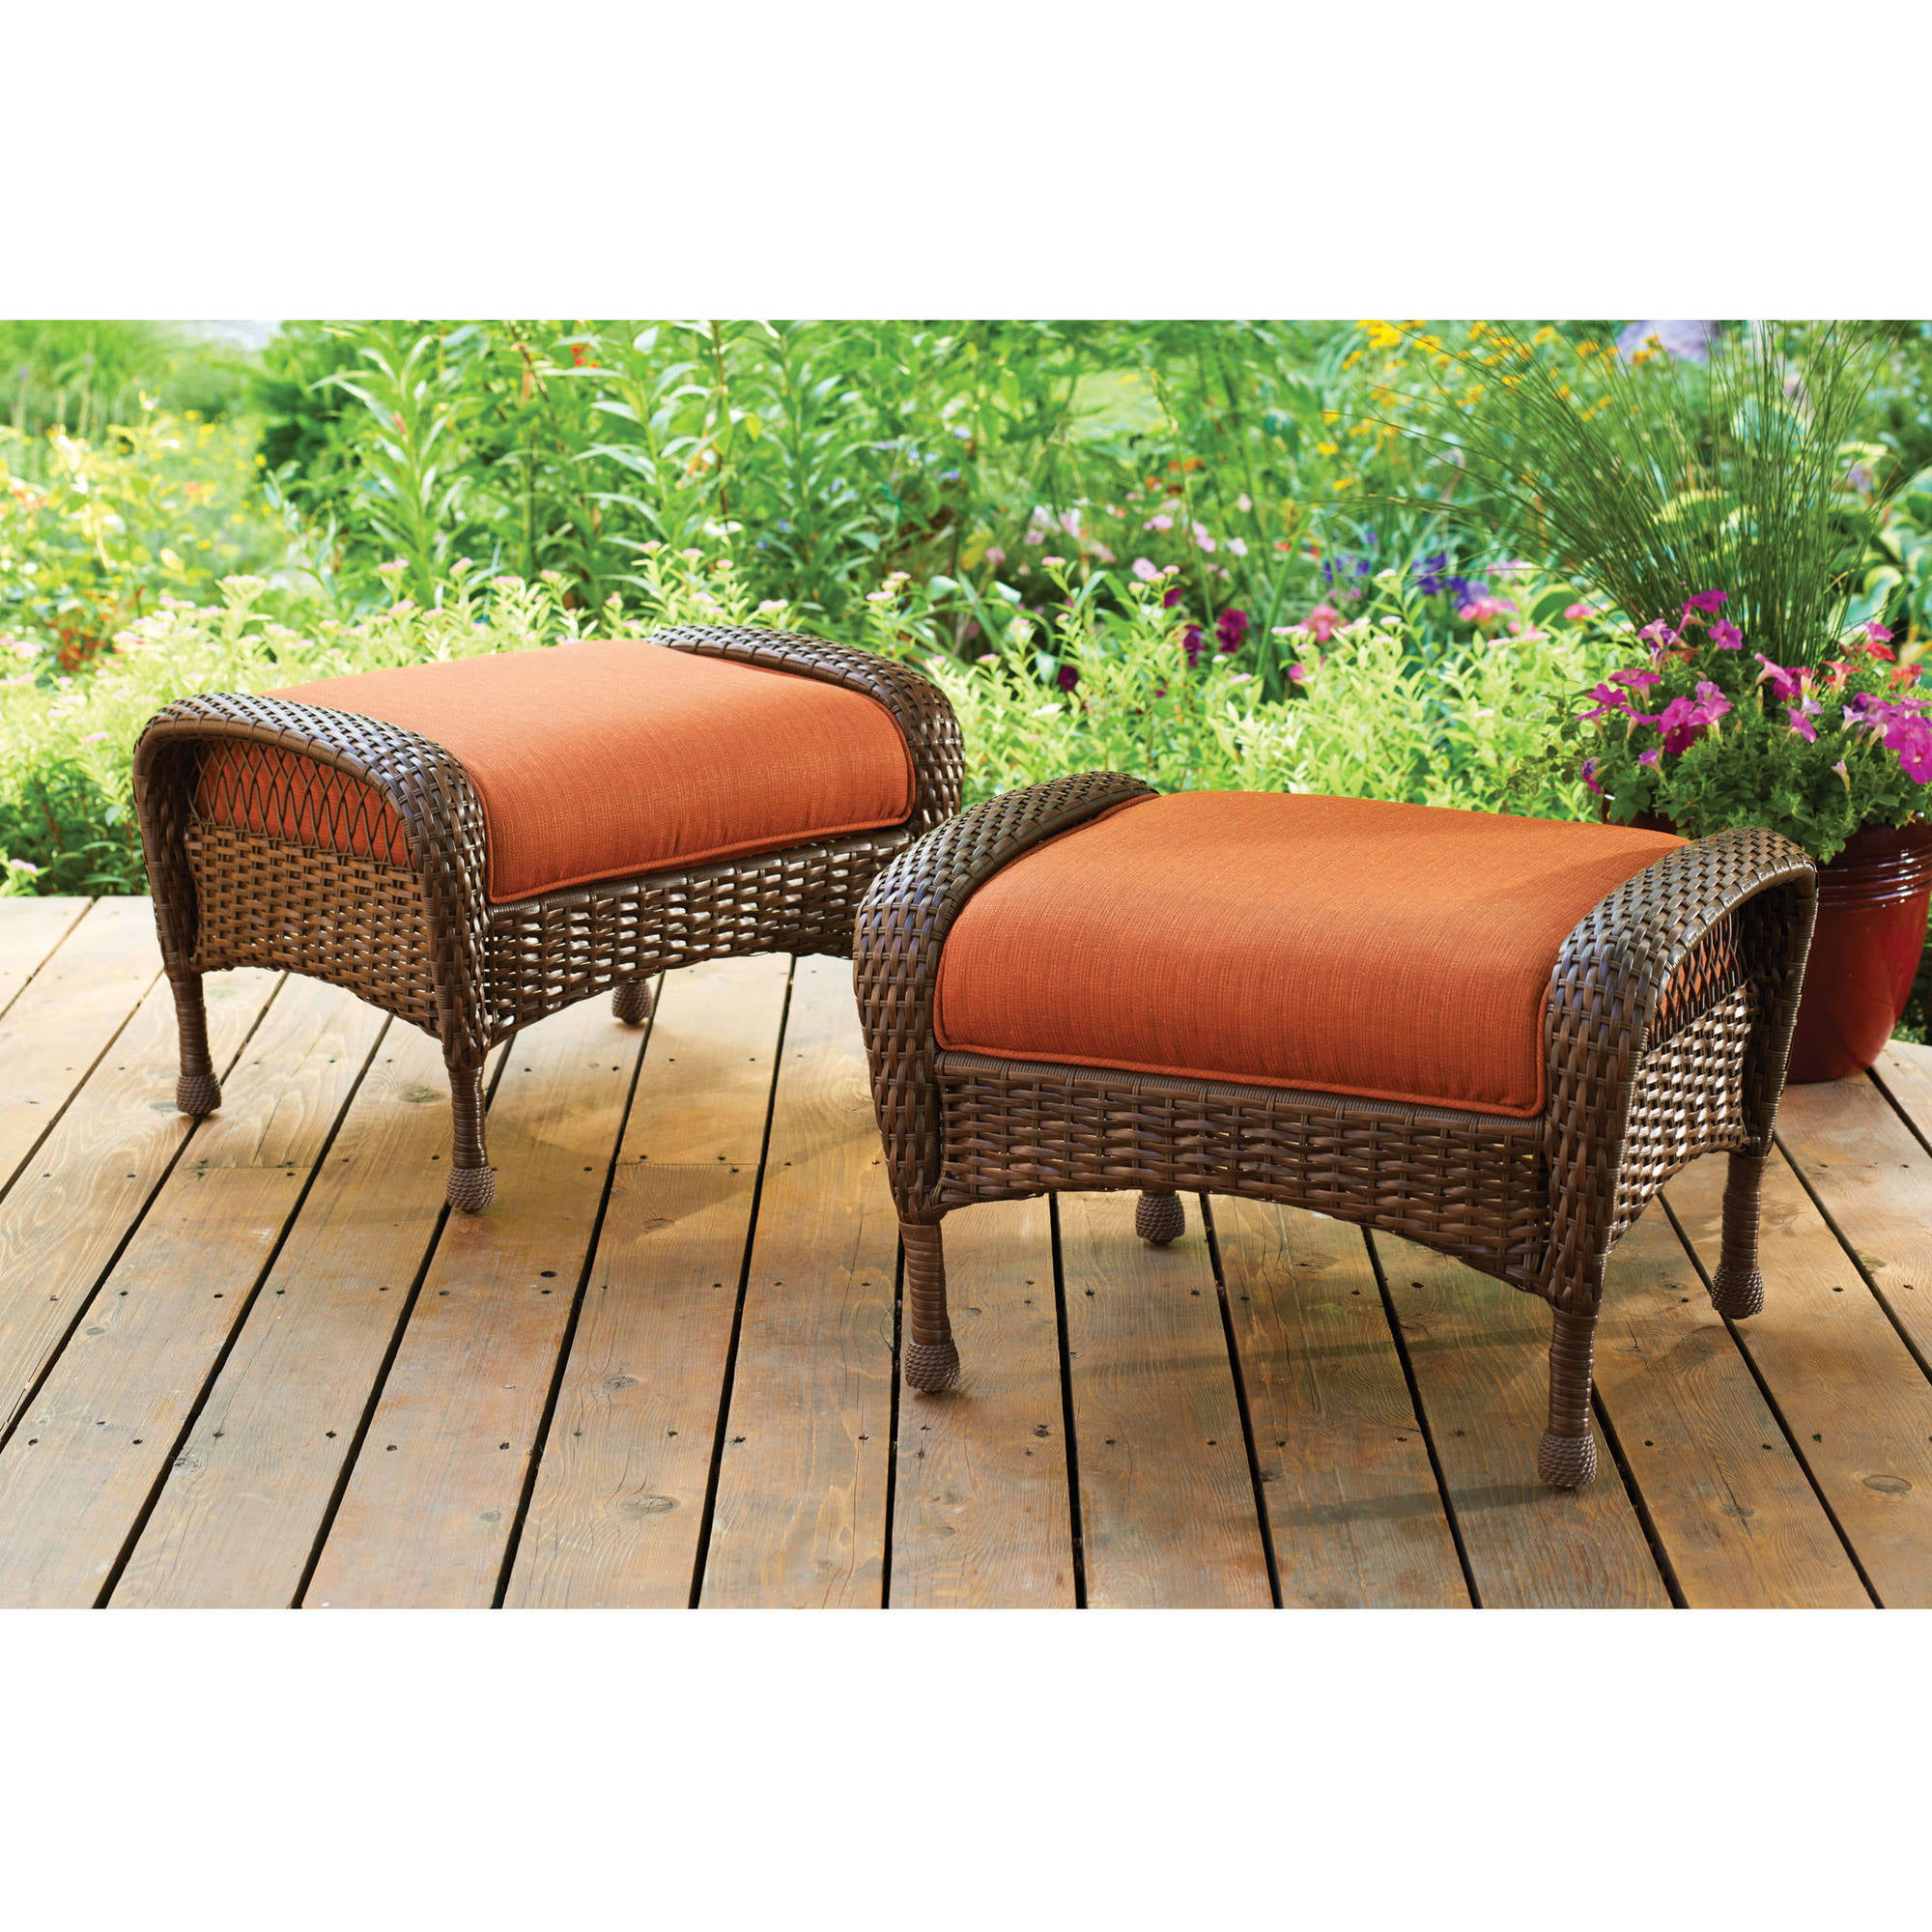 Garden Furniture Tables patio furniture - walmart